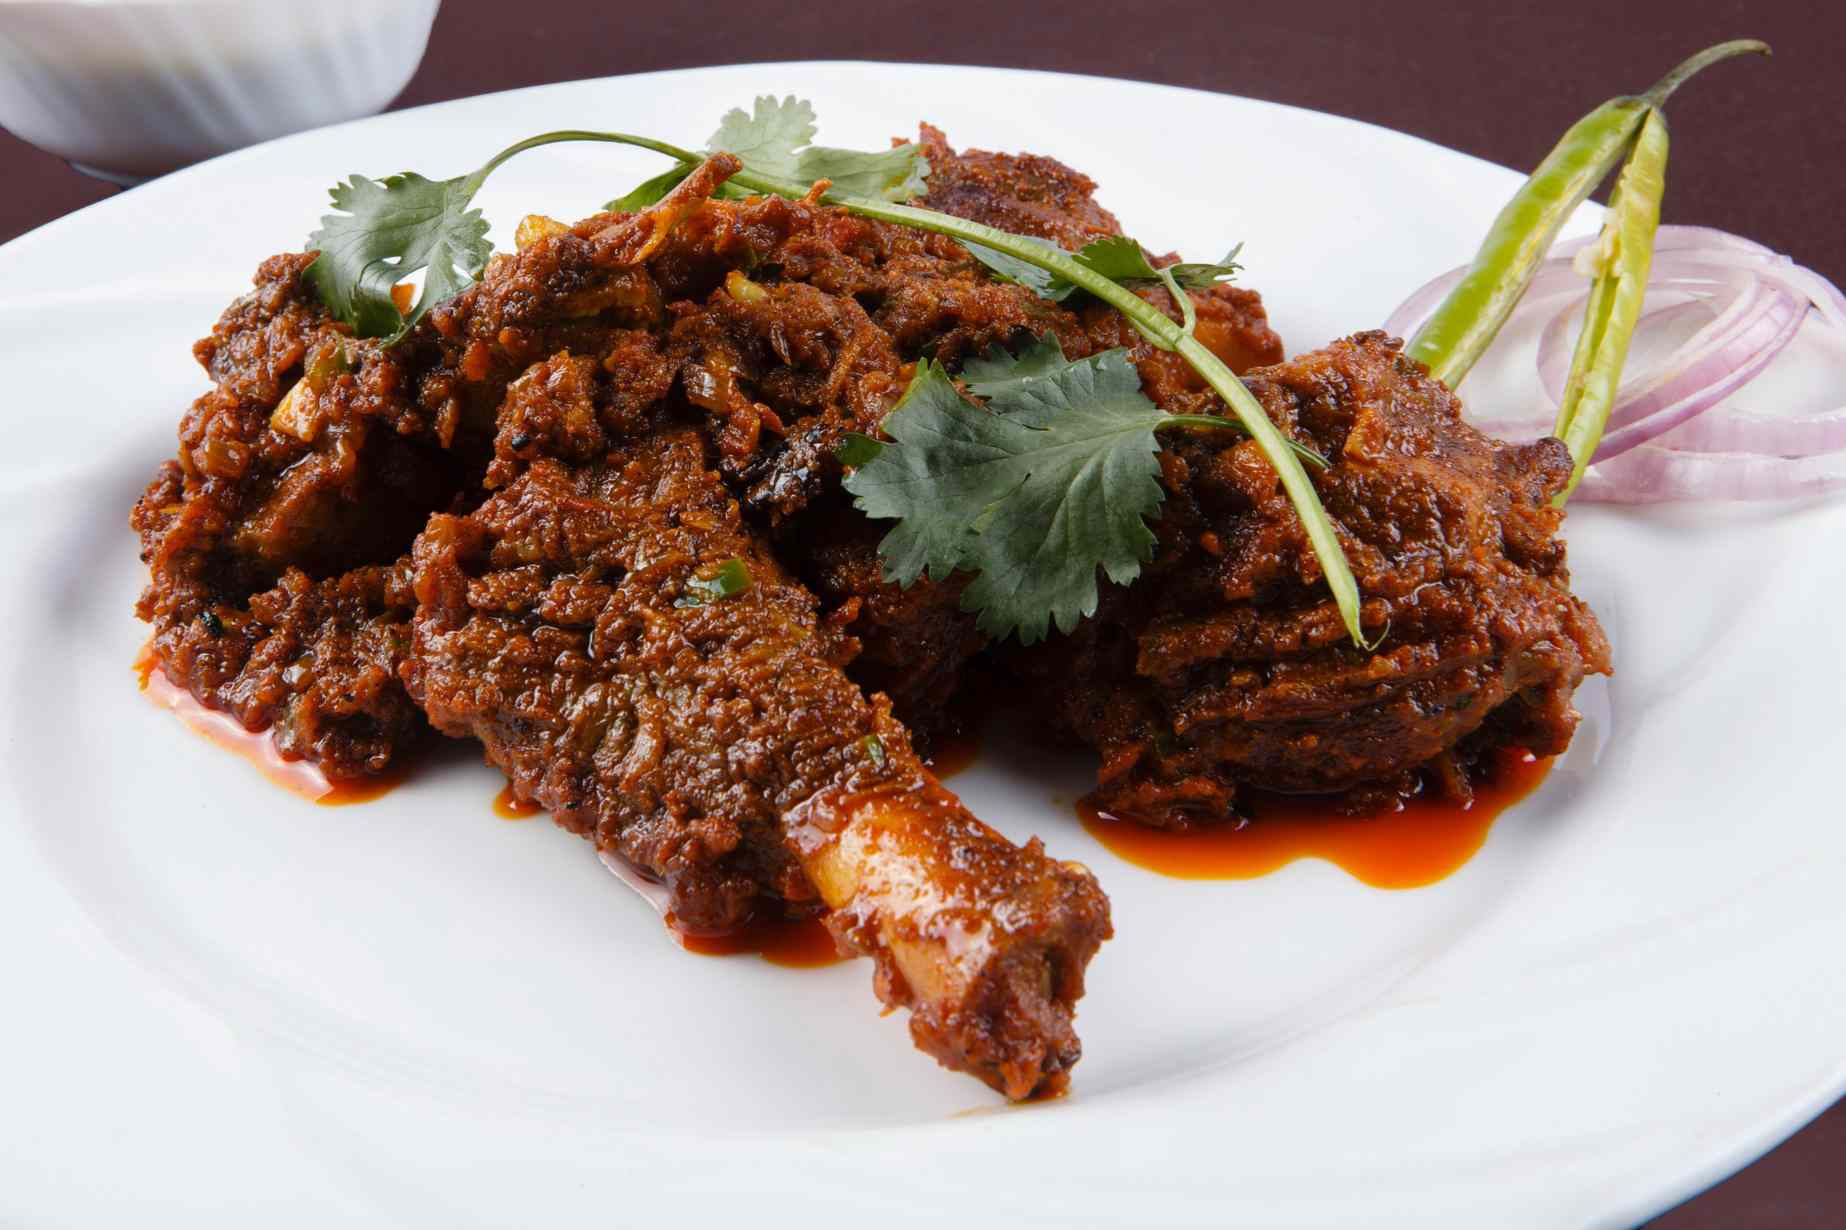 Mutton/goat curry garnished with a sprig of cilantro, a gree pepper and a few slices of onion